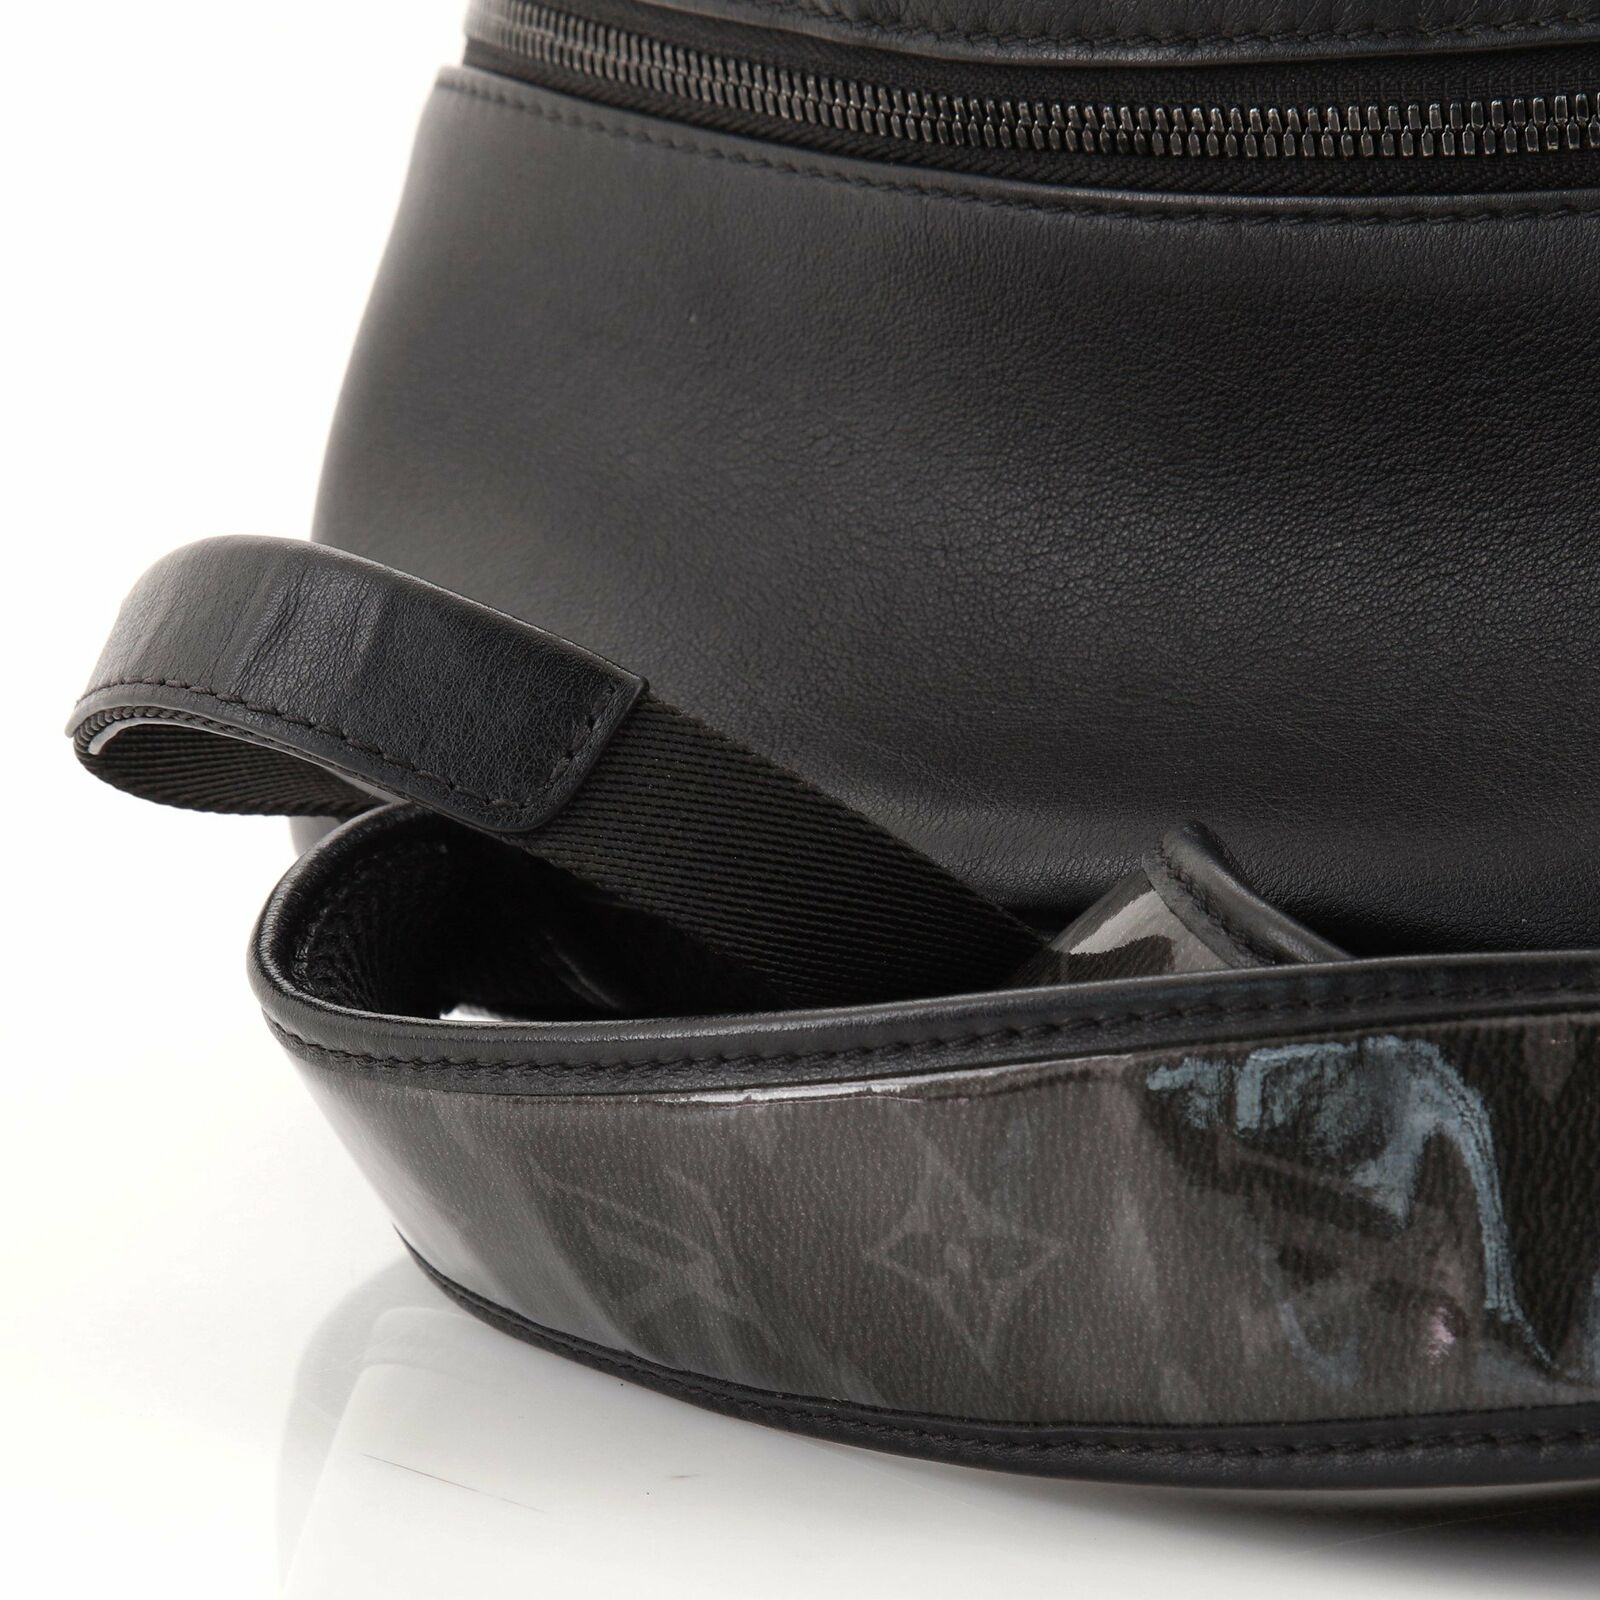 Louis Vuitton Backpack Dark Infinity Leather PM - image 7